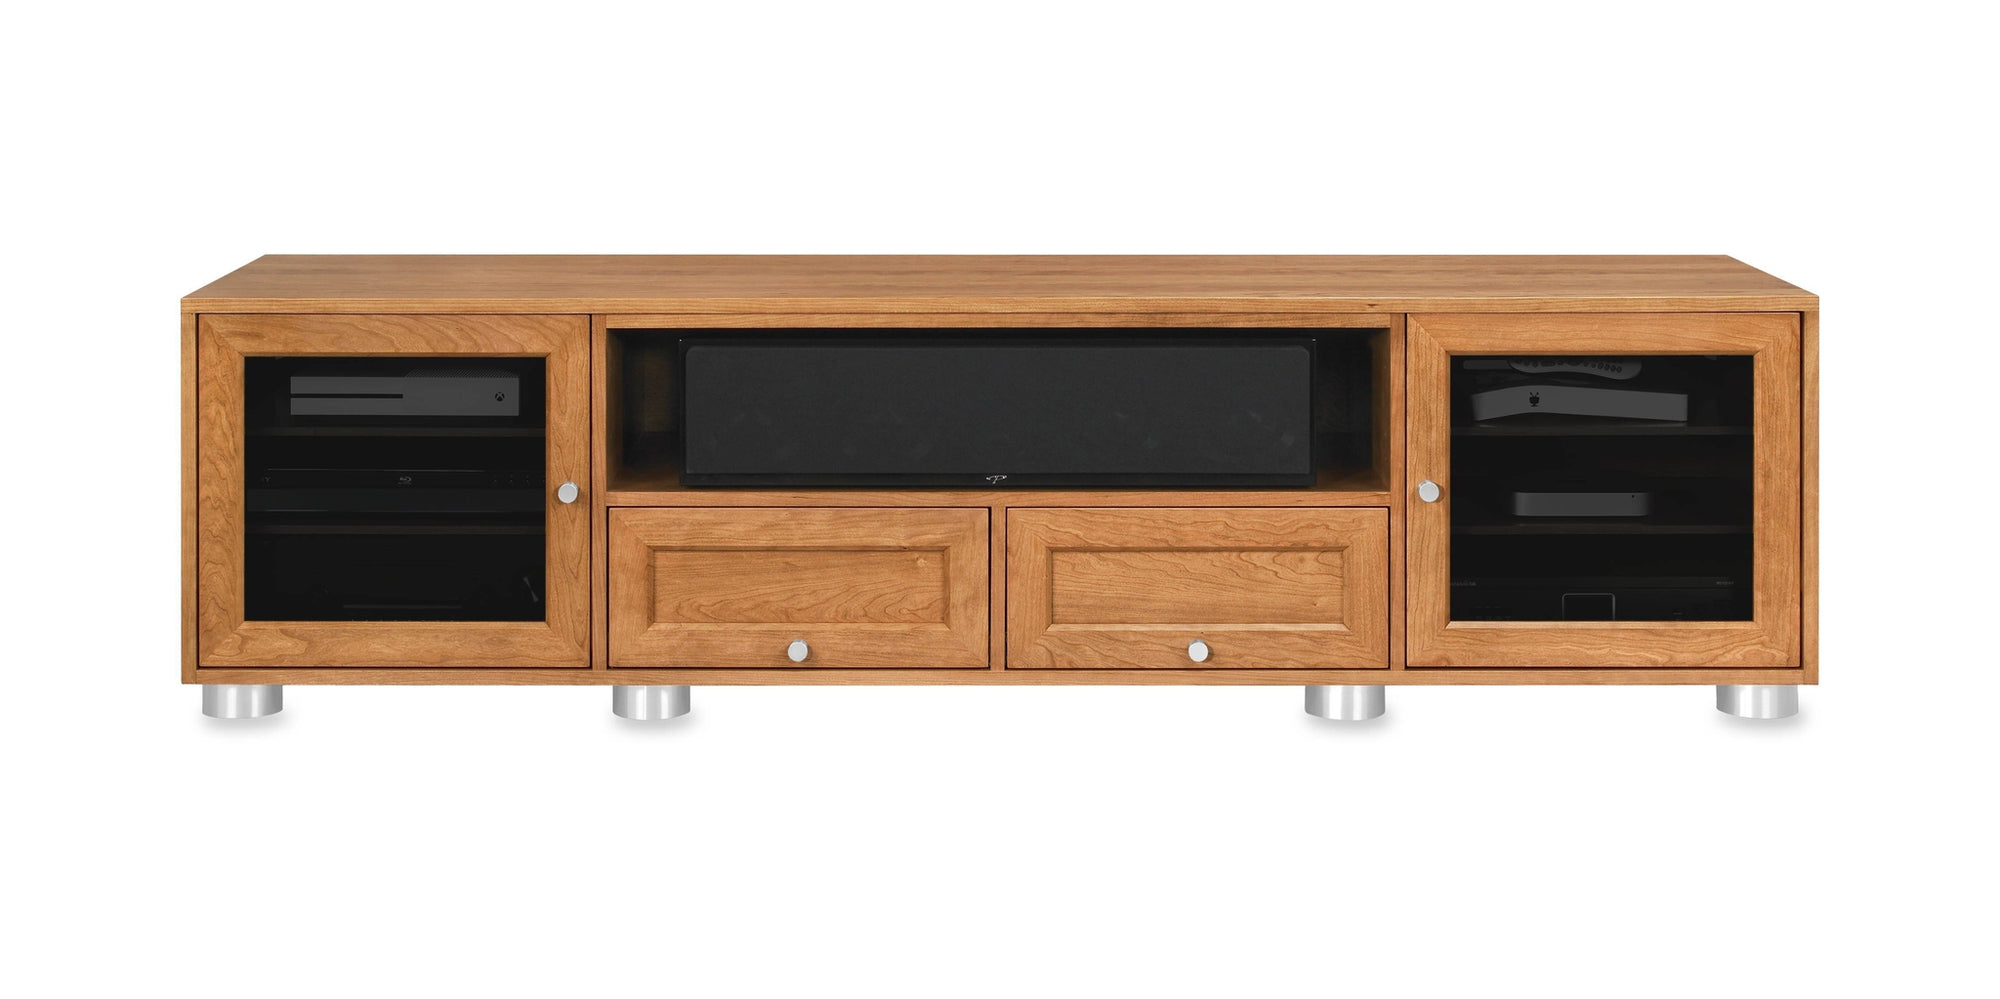 Majestic Ex 82 In American Solid Wood Media Console Tv Stand For